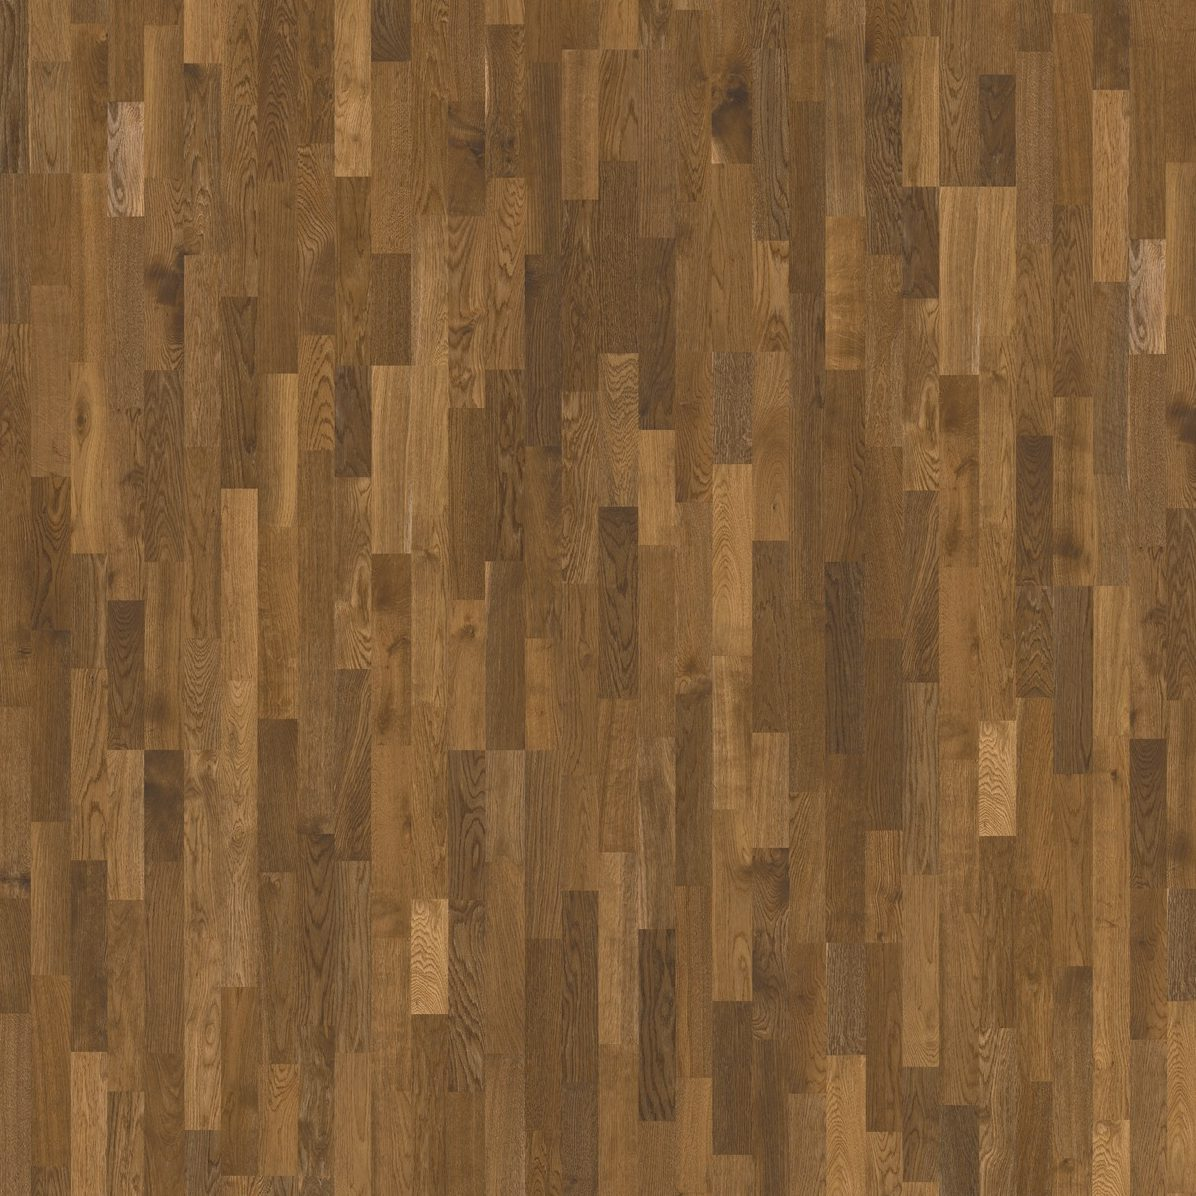 Wood Stain Dusk: Wooden And Hard Wood Flooring Surrey, Sussex